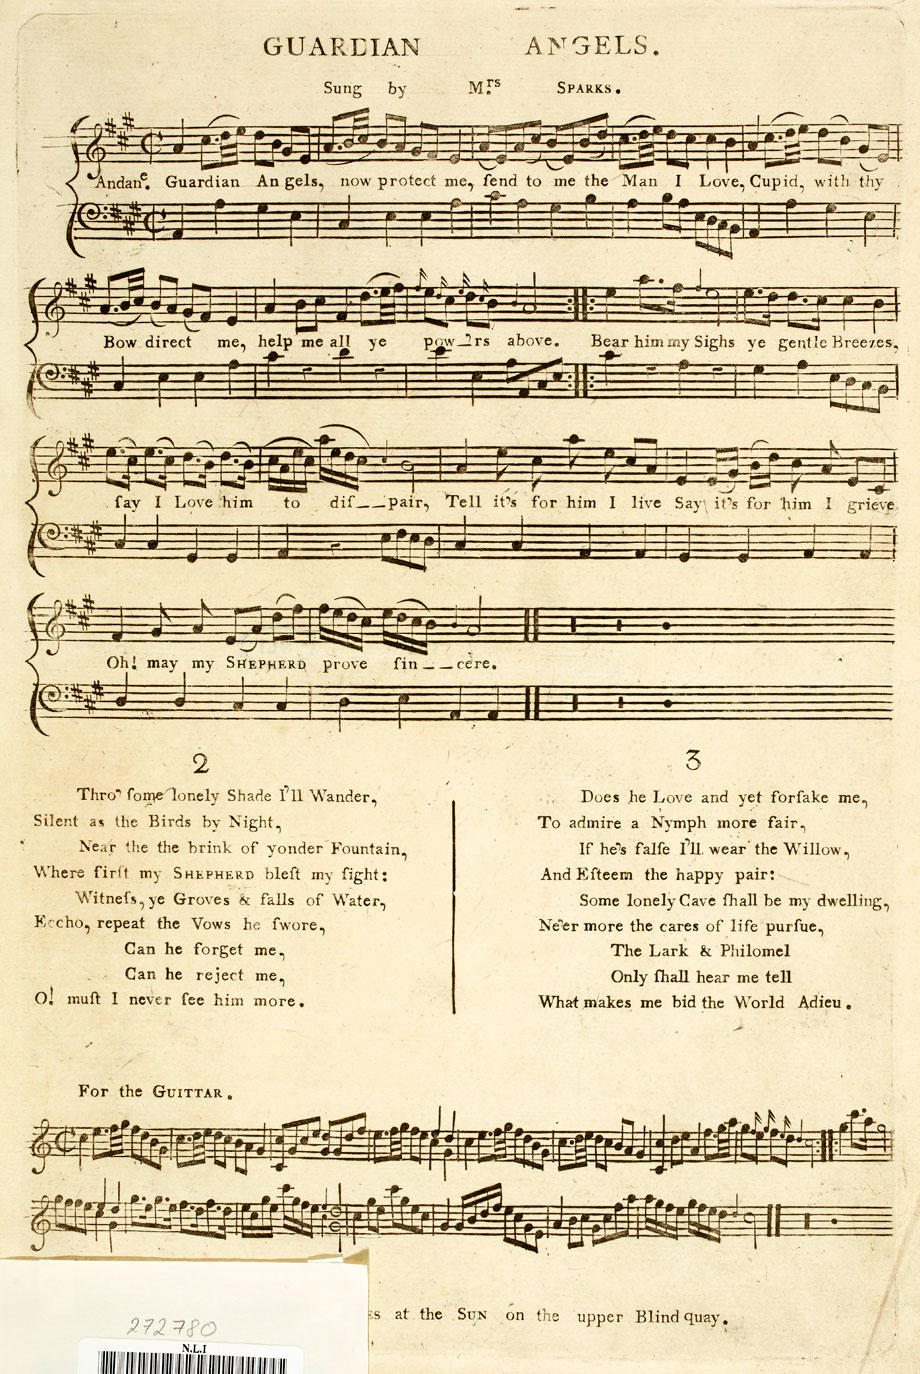 Guardian Angels sung by Mrs Sparks, and printed in Dublin by Benjamin Rhames at the Sun on the upper Blind Quay, 18th century. NLI   ref.: Mu-sb-16